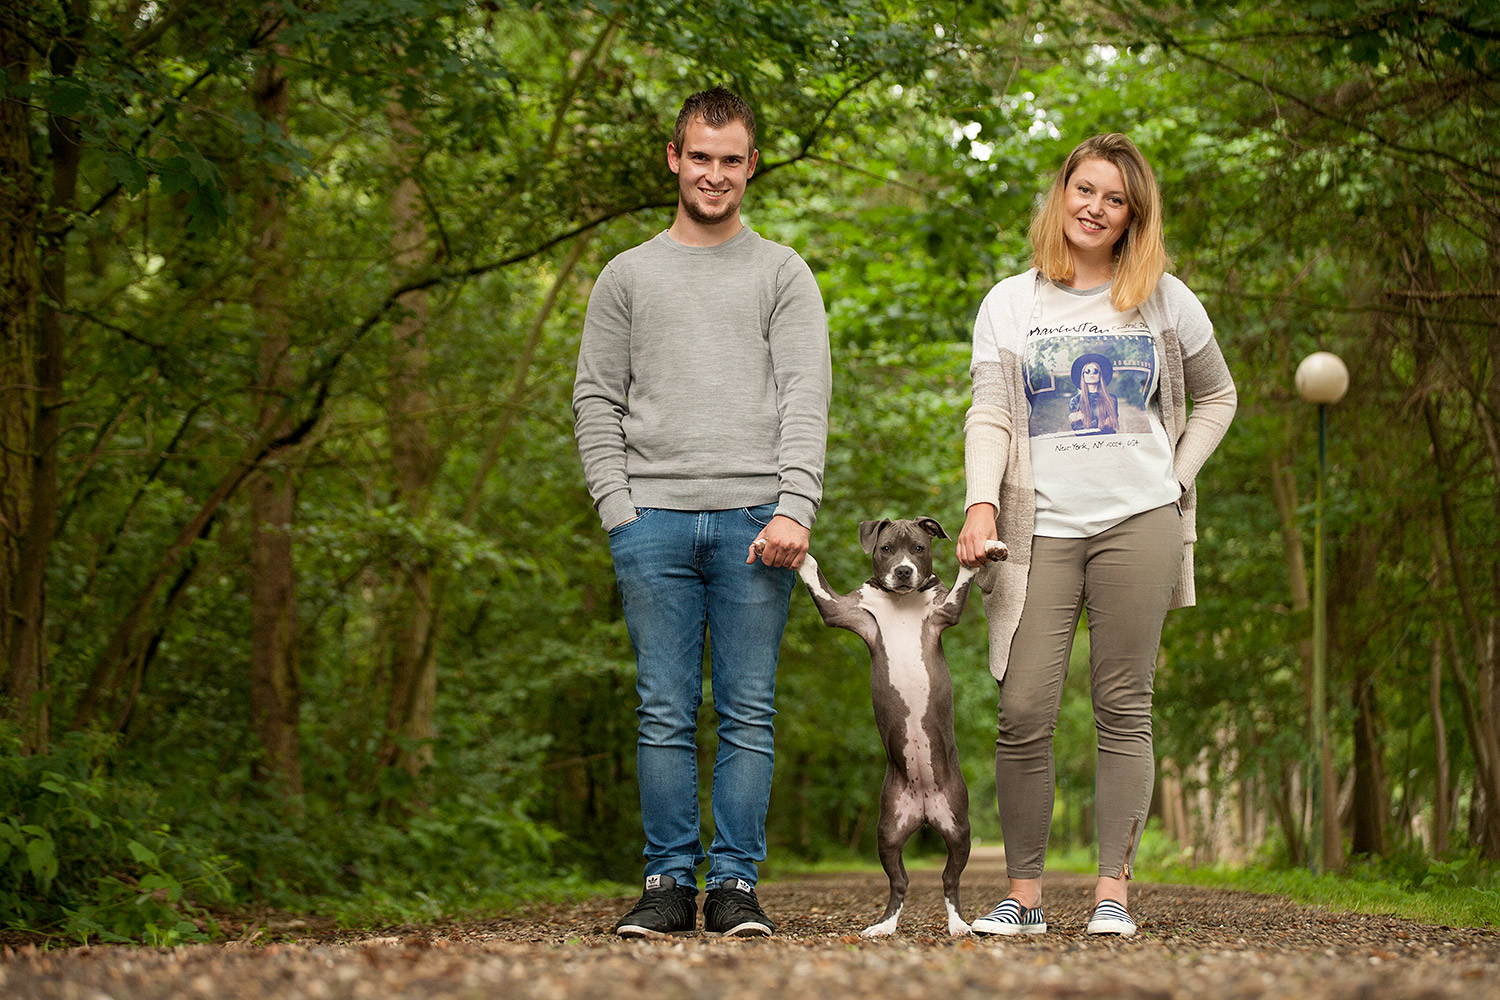 dnf-tyle_portret_fotograaf_natuur_familie_36